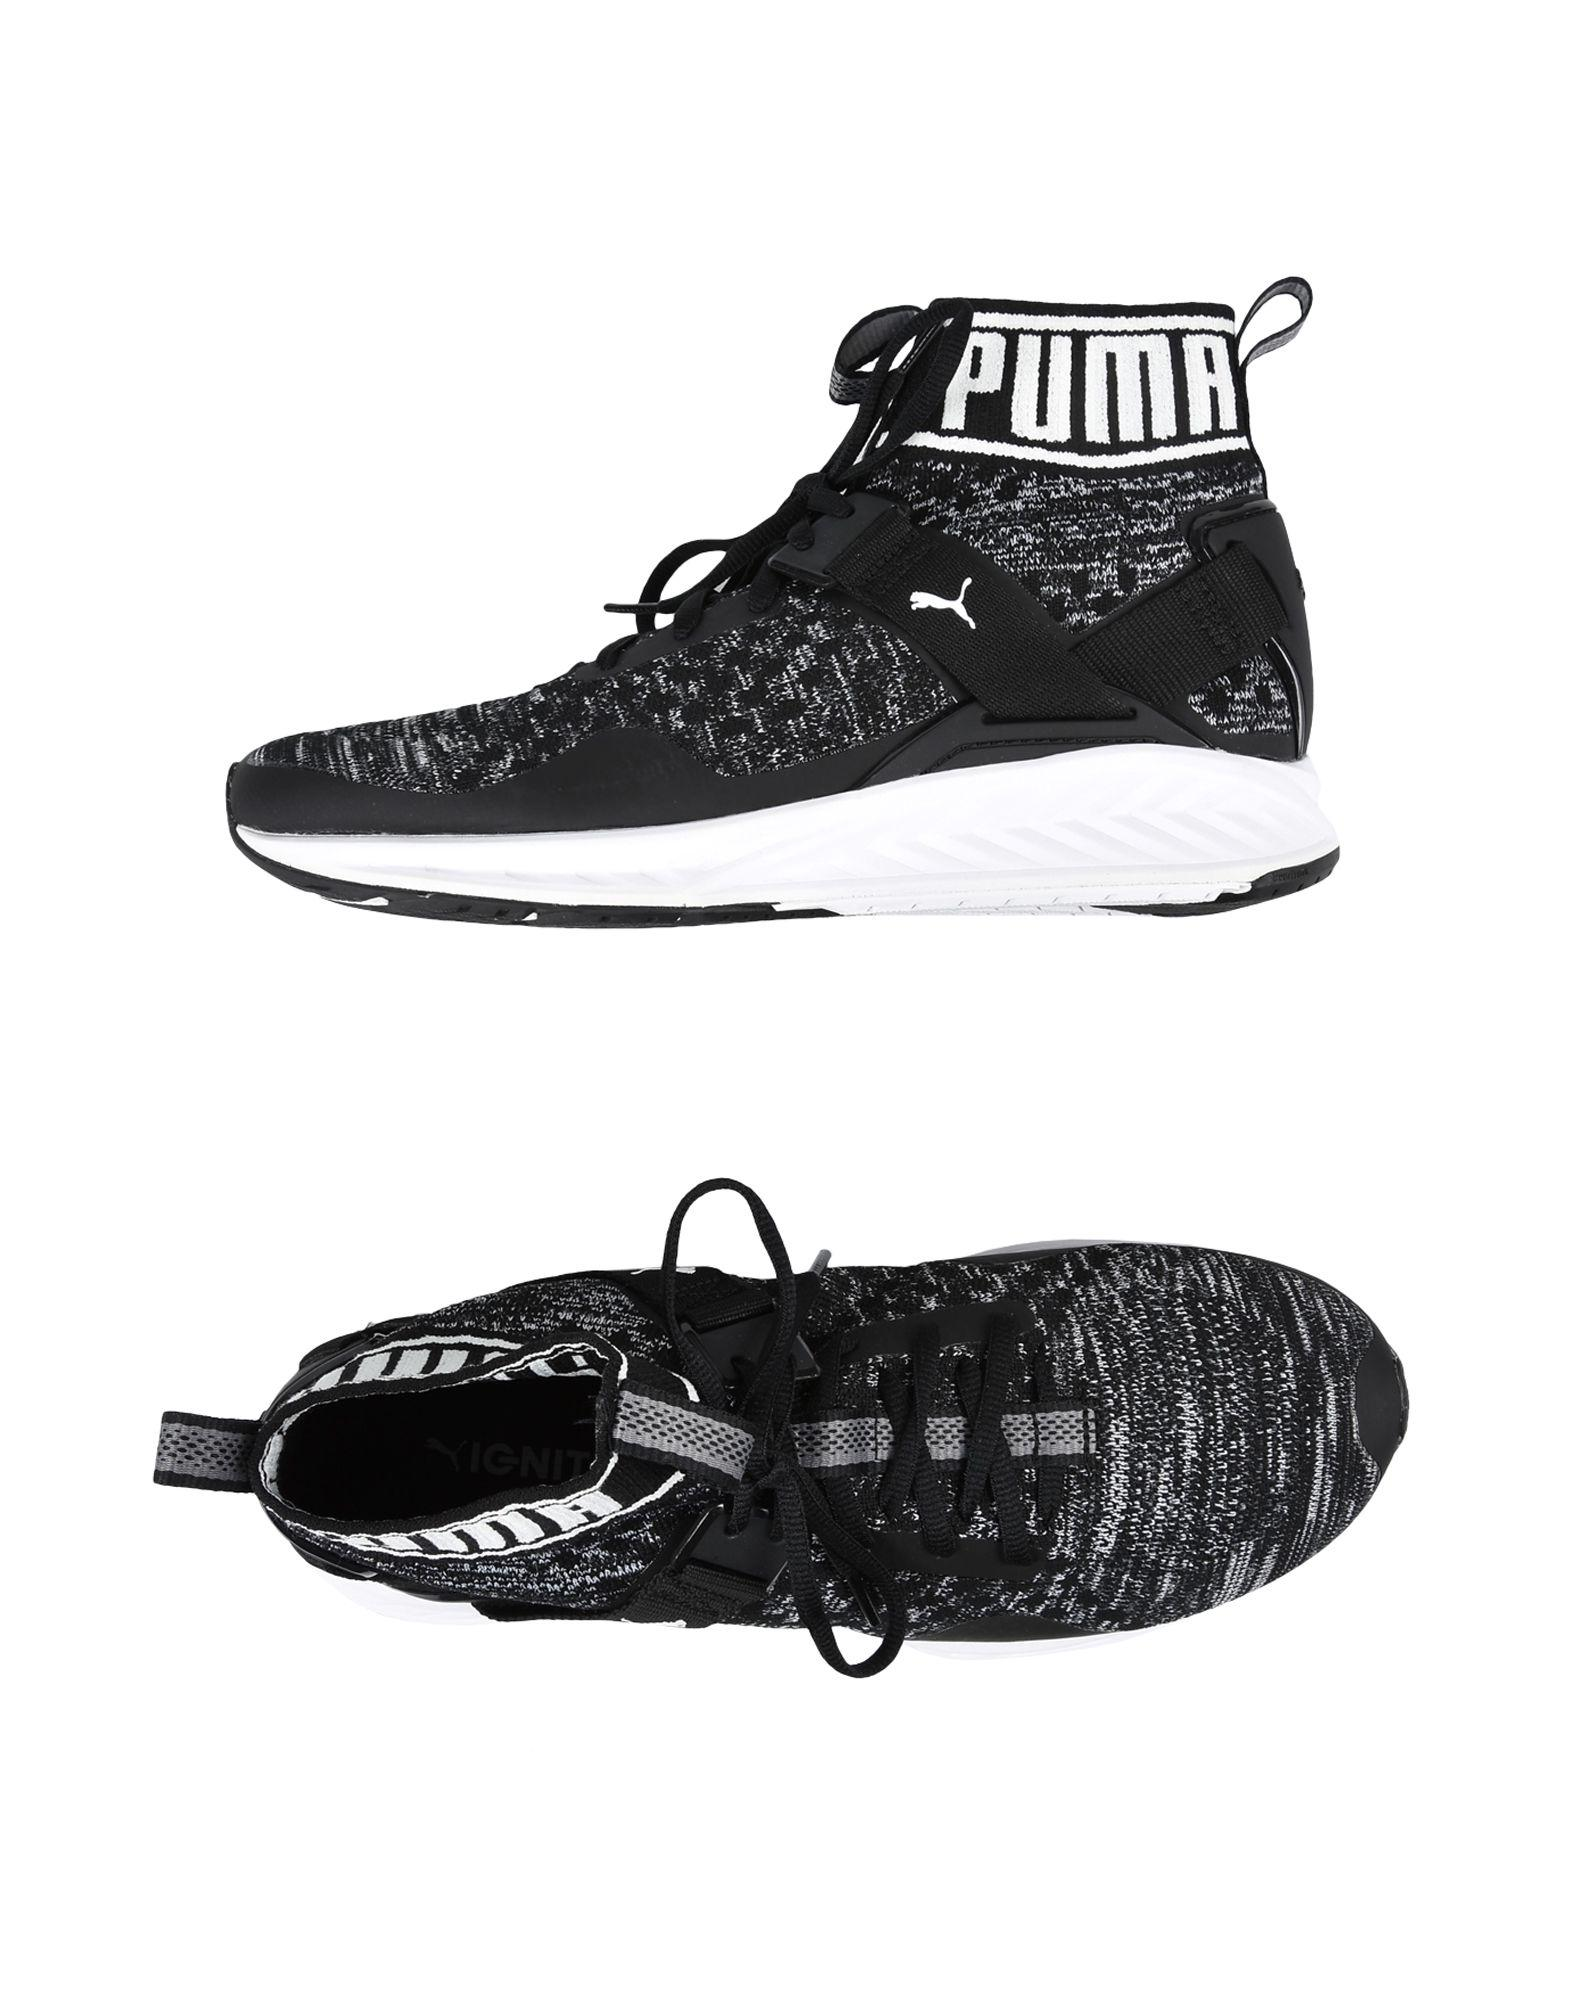 8ee5d5f33ee0 Lyst - PUMA Women s Ignite Evoknit High Top Sneakers in Black - Save 63%